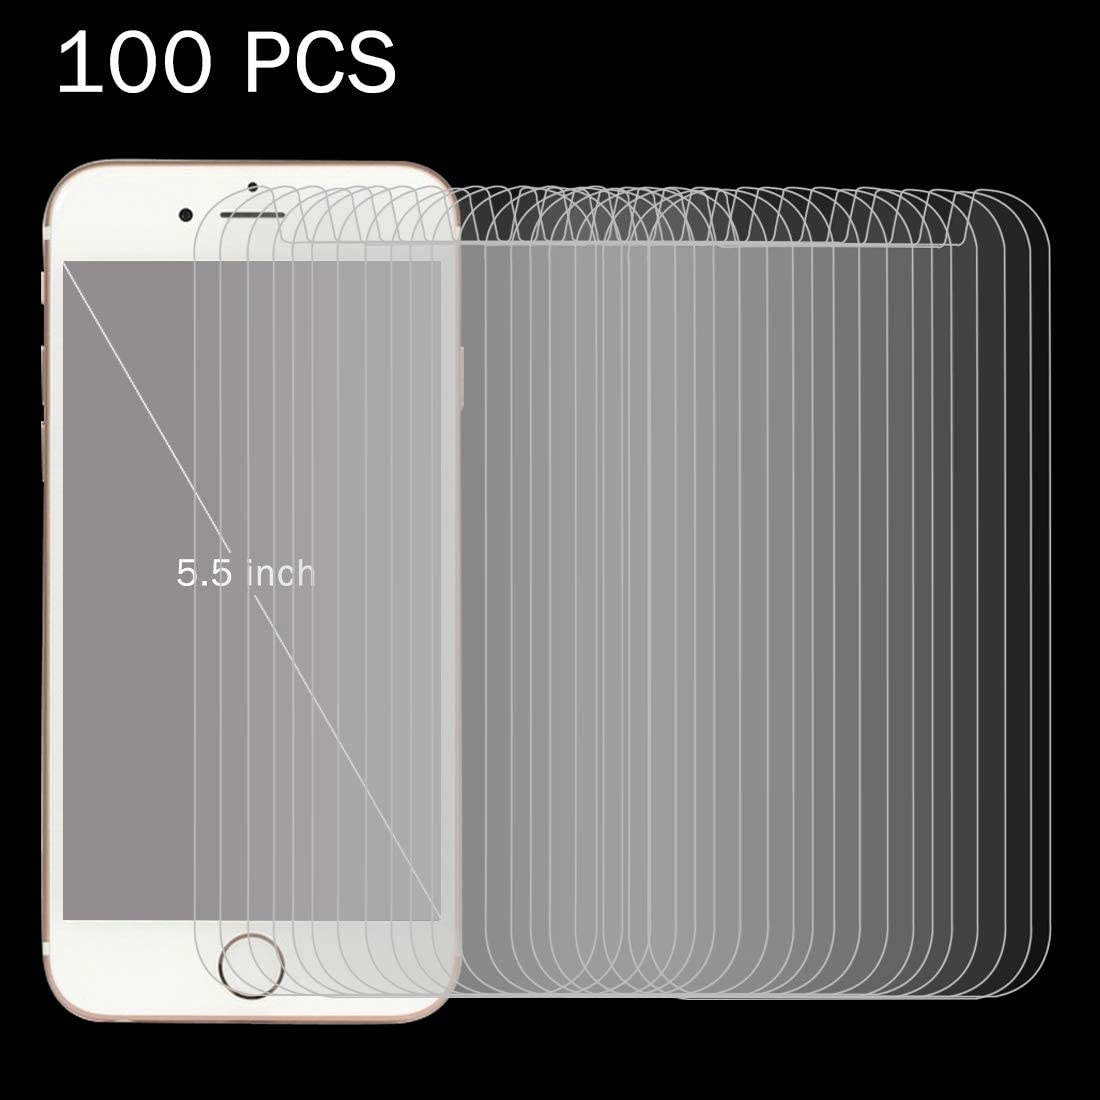 YINZHI Screen Protector Film 100 PCS 0.26mm 9H Surface Hardness 2.5D Explosion-Proof Tempered Glass Screen Film for 5.5 inch Mobile Phones Clear